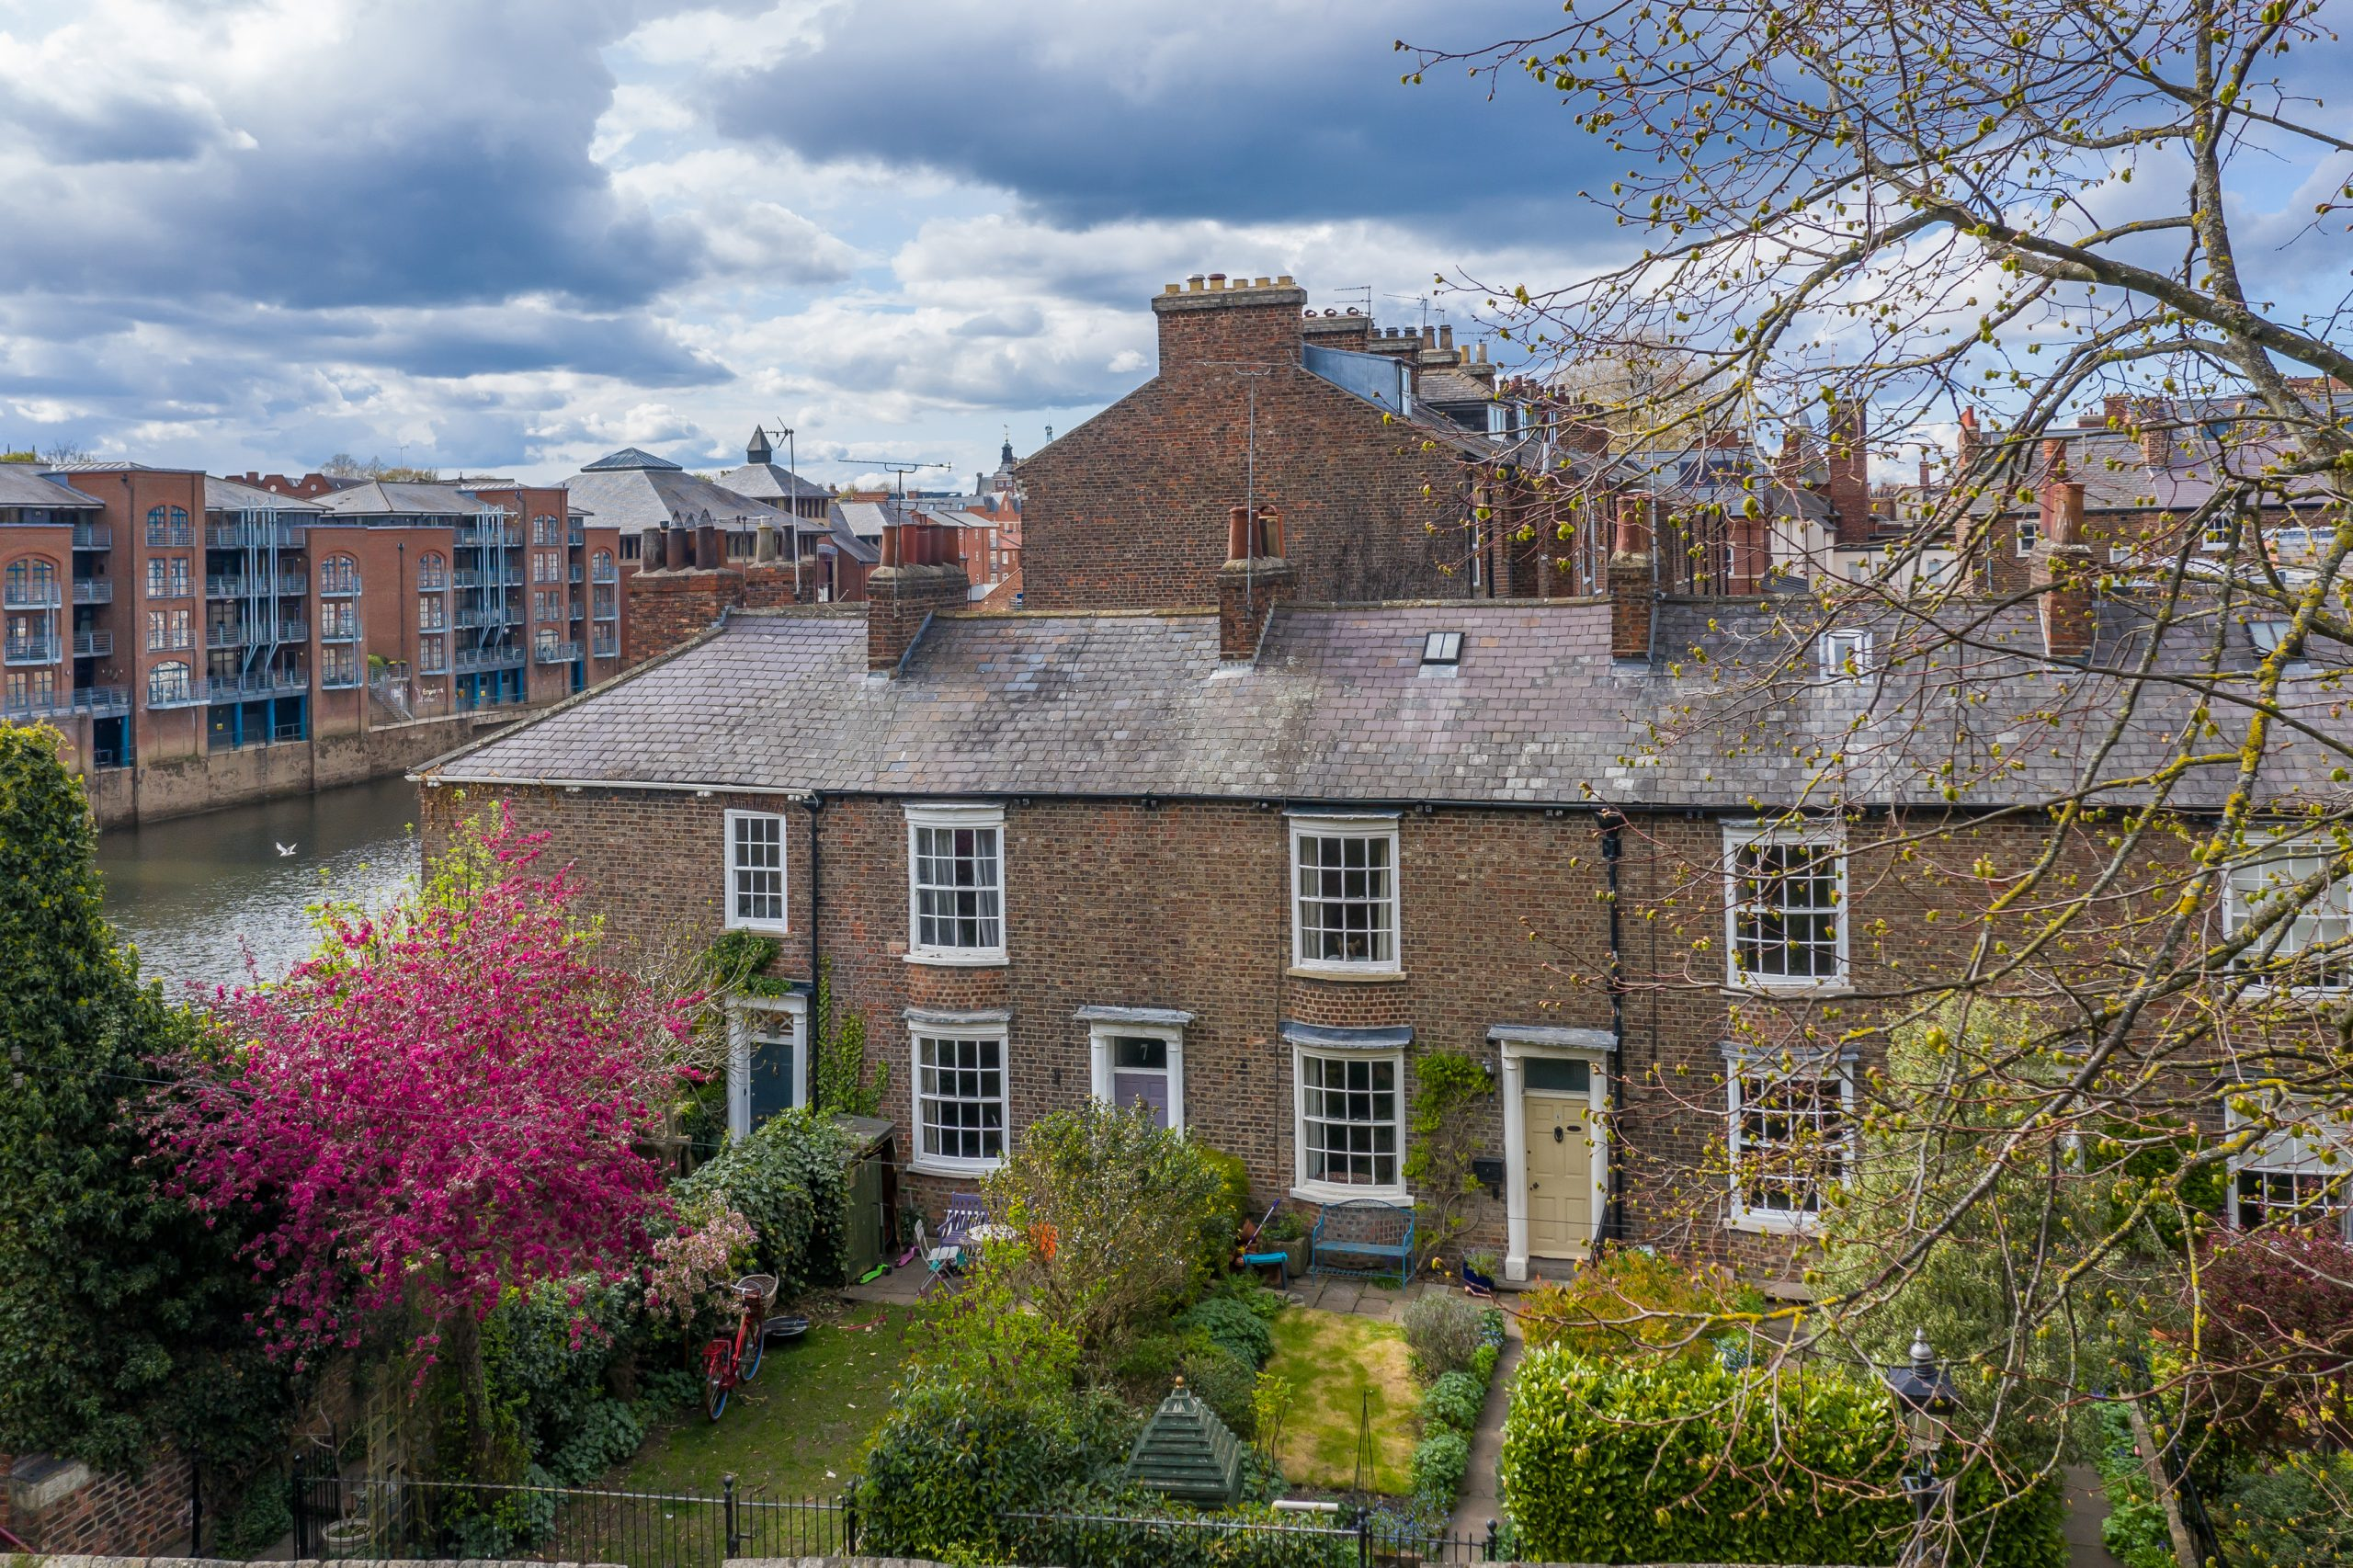 RESIDENTIAL PROPERTY MARKET UPDATE